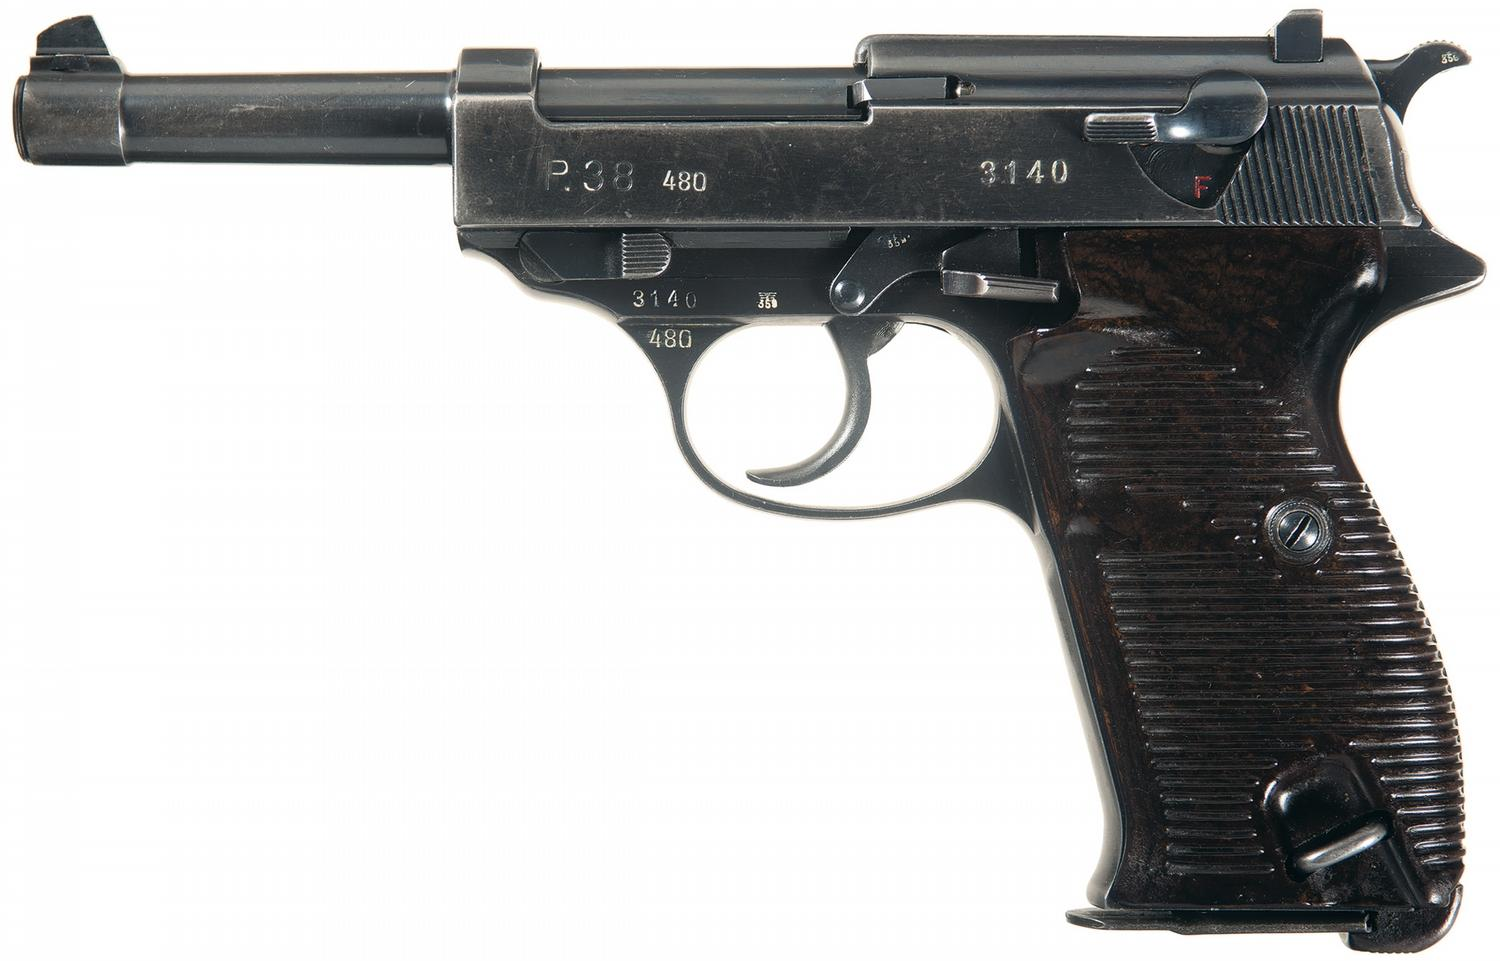 Rare Early Wwii Walther 480 Code -38 Semi-automatic Pistol